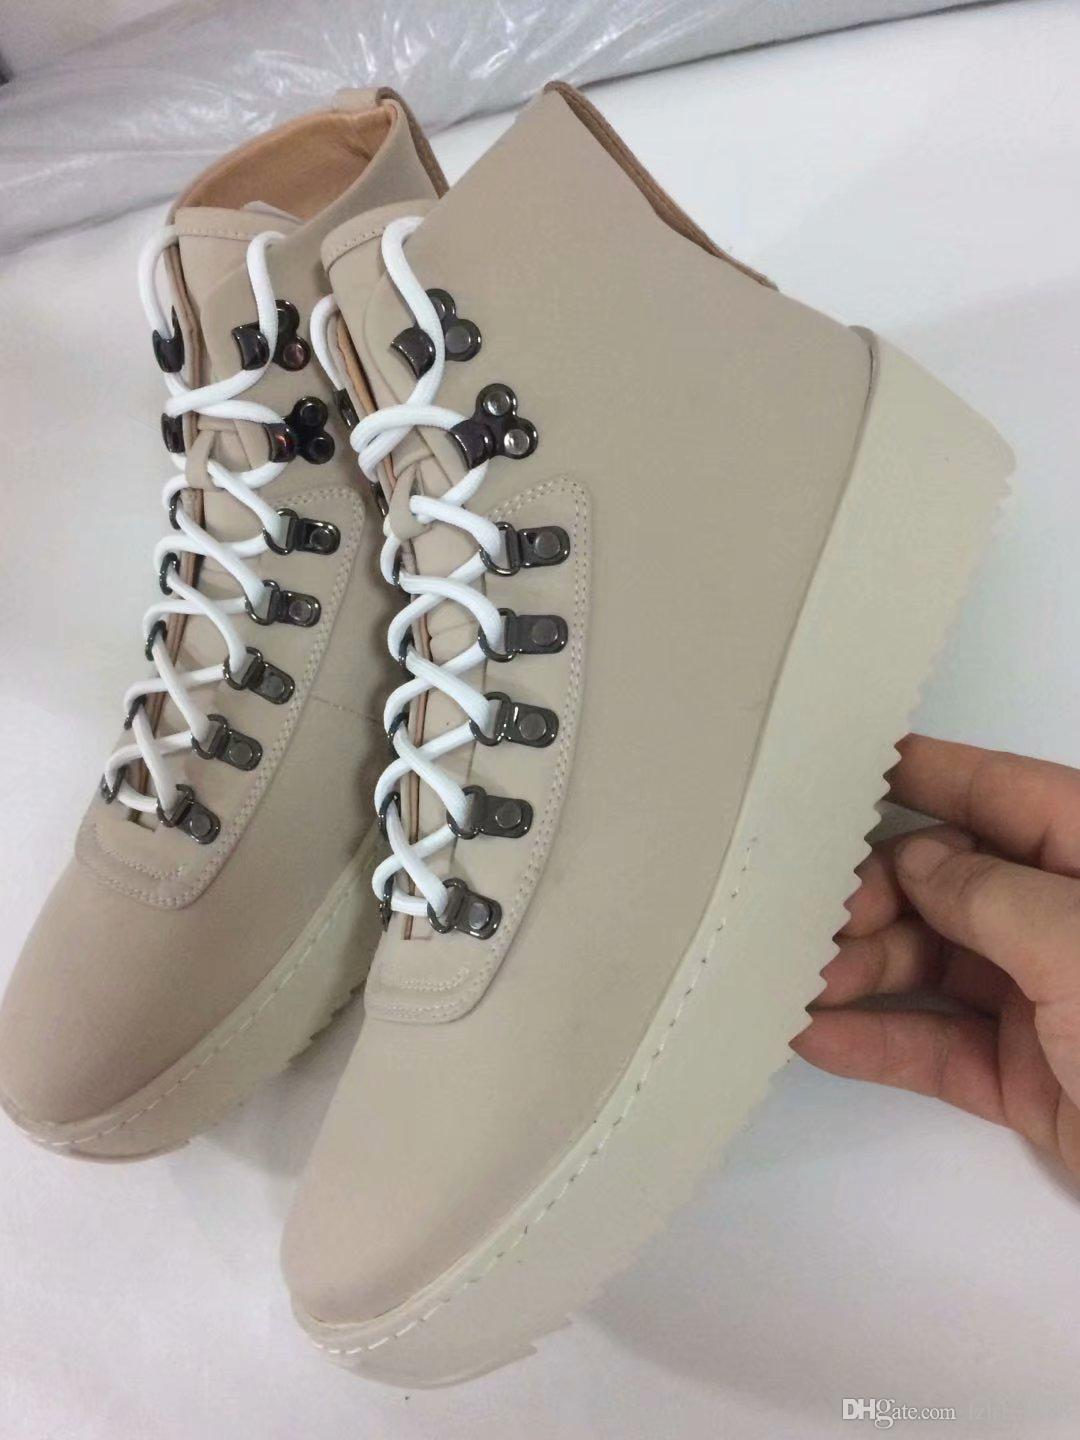 aafb2387c8d Fear Of God New Shoes High Top Leather Sneaker With Canvas Insets Fog Boots  Platform Men Fashion Leather Shoes Size 38 45 Hiking Boots Shoes For Women  From ...